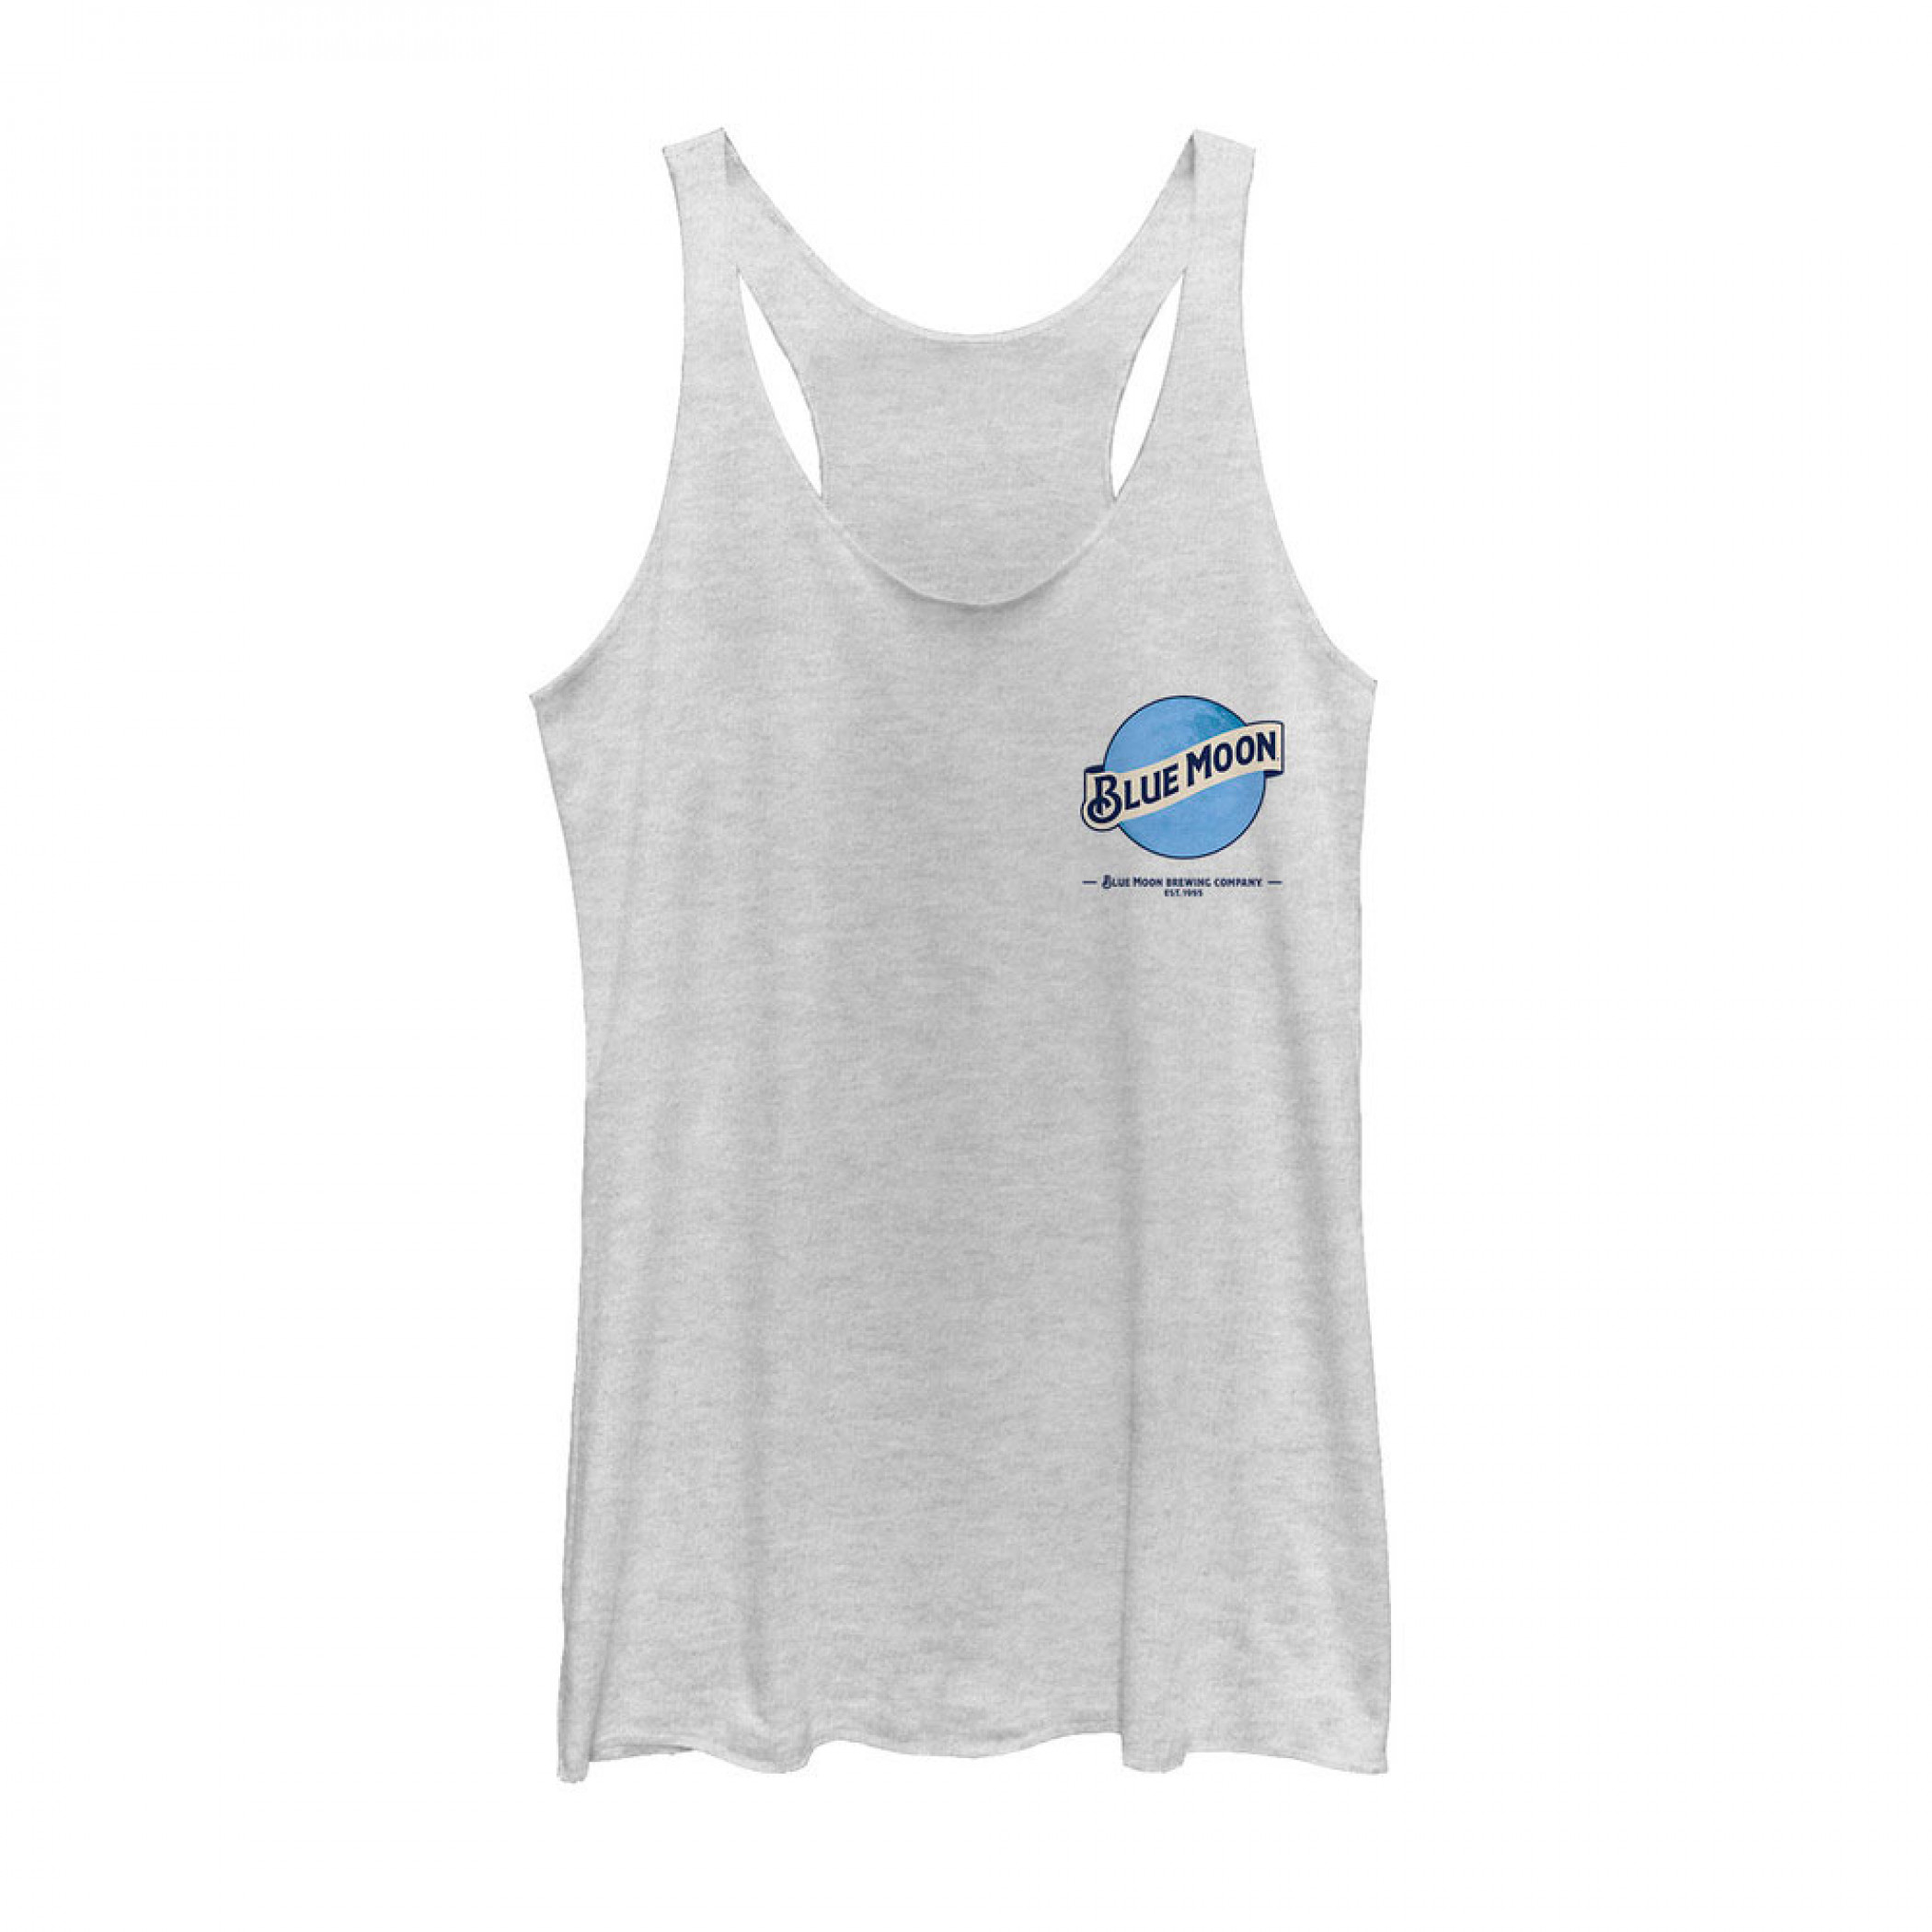 Blue Moon Beer Small Logo Women's White Tank Top